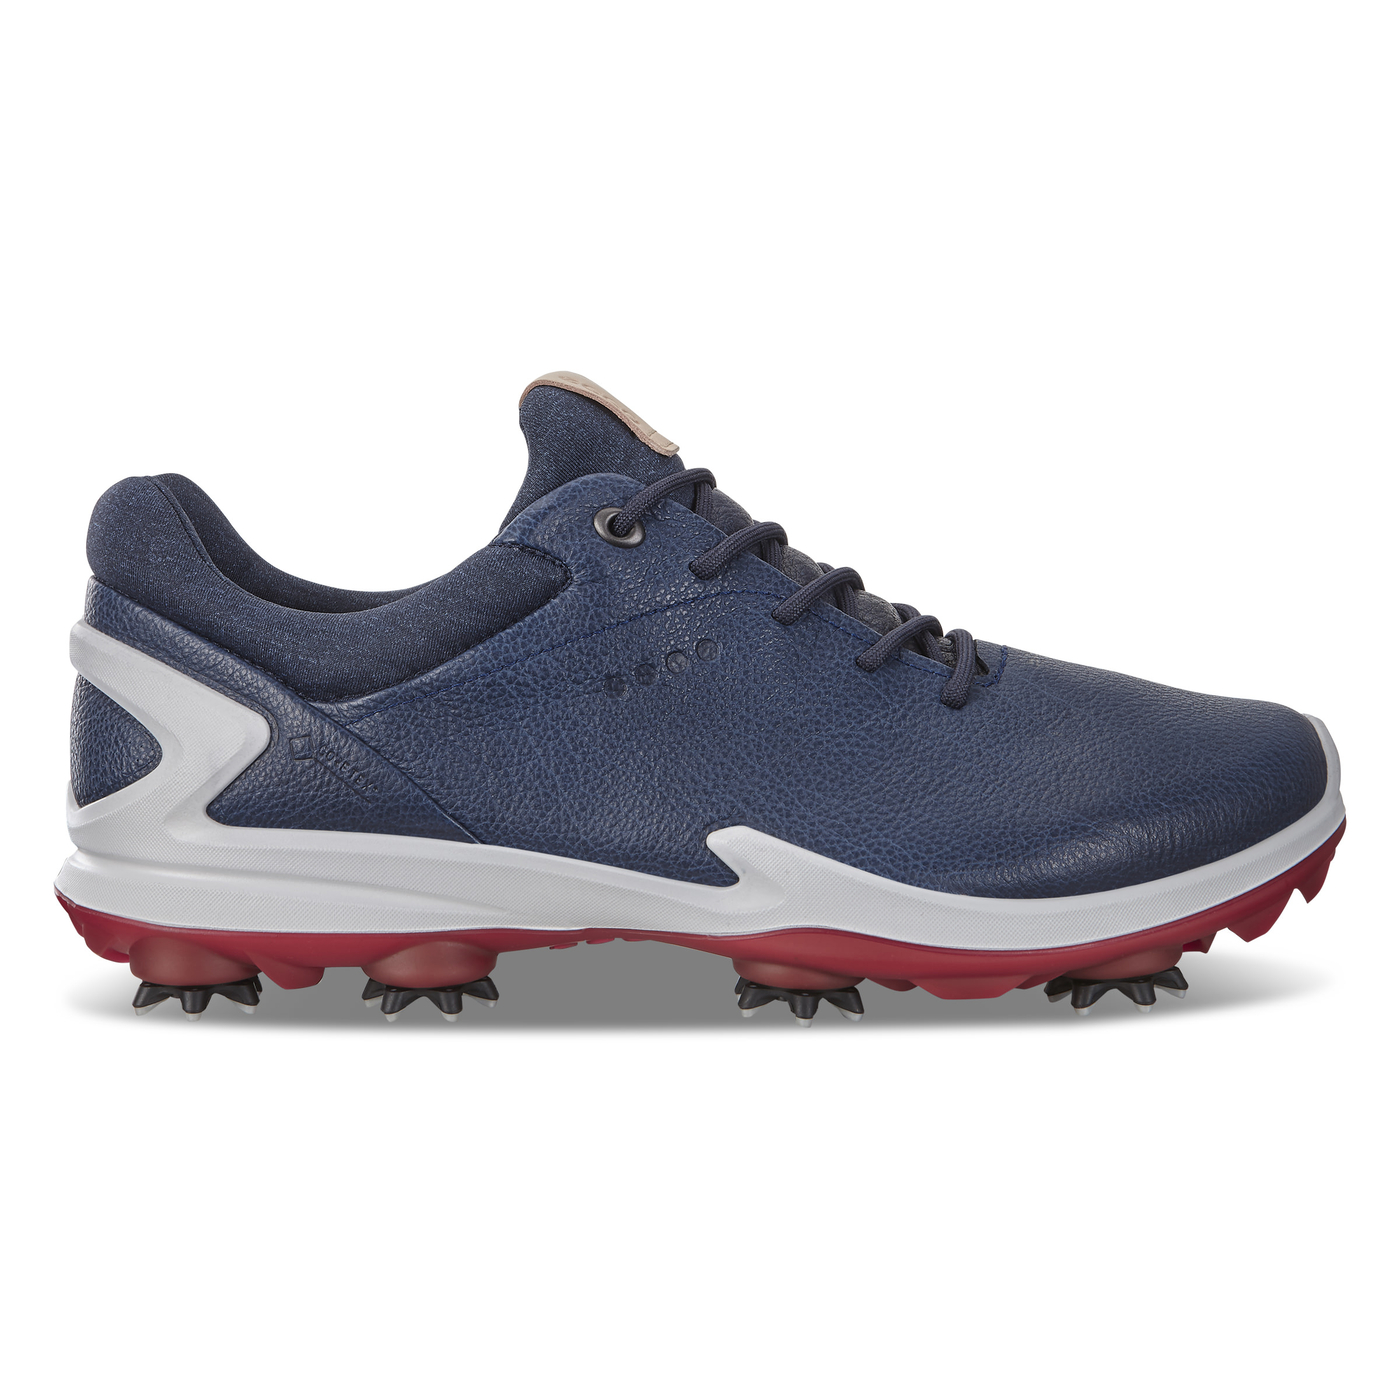 ECCO GOLF BIOM G3 Mens Softspike GTX